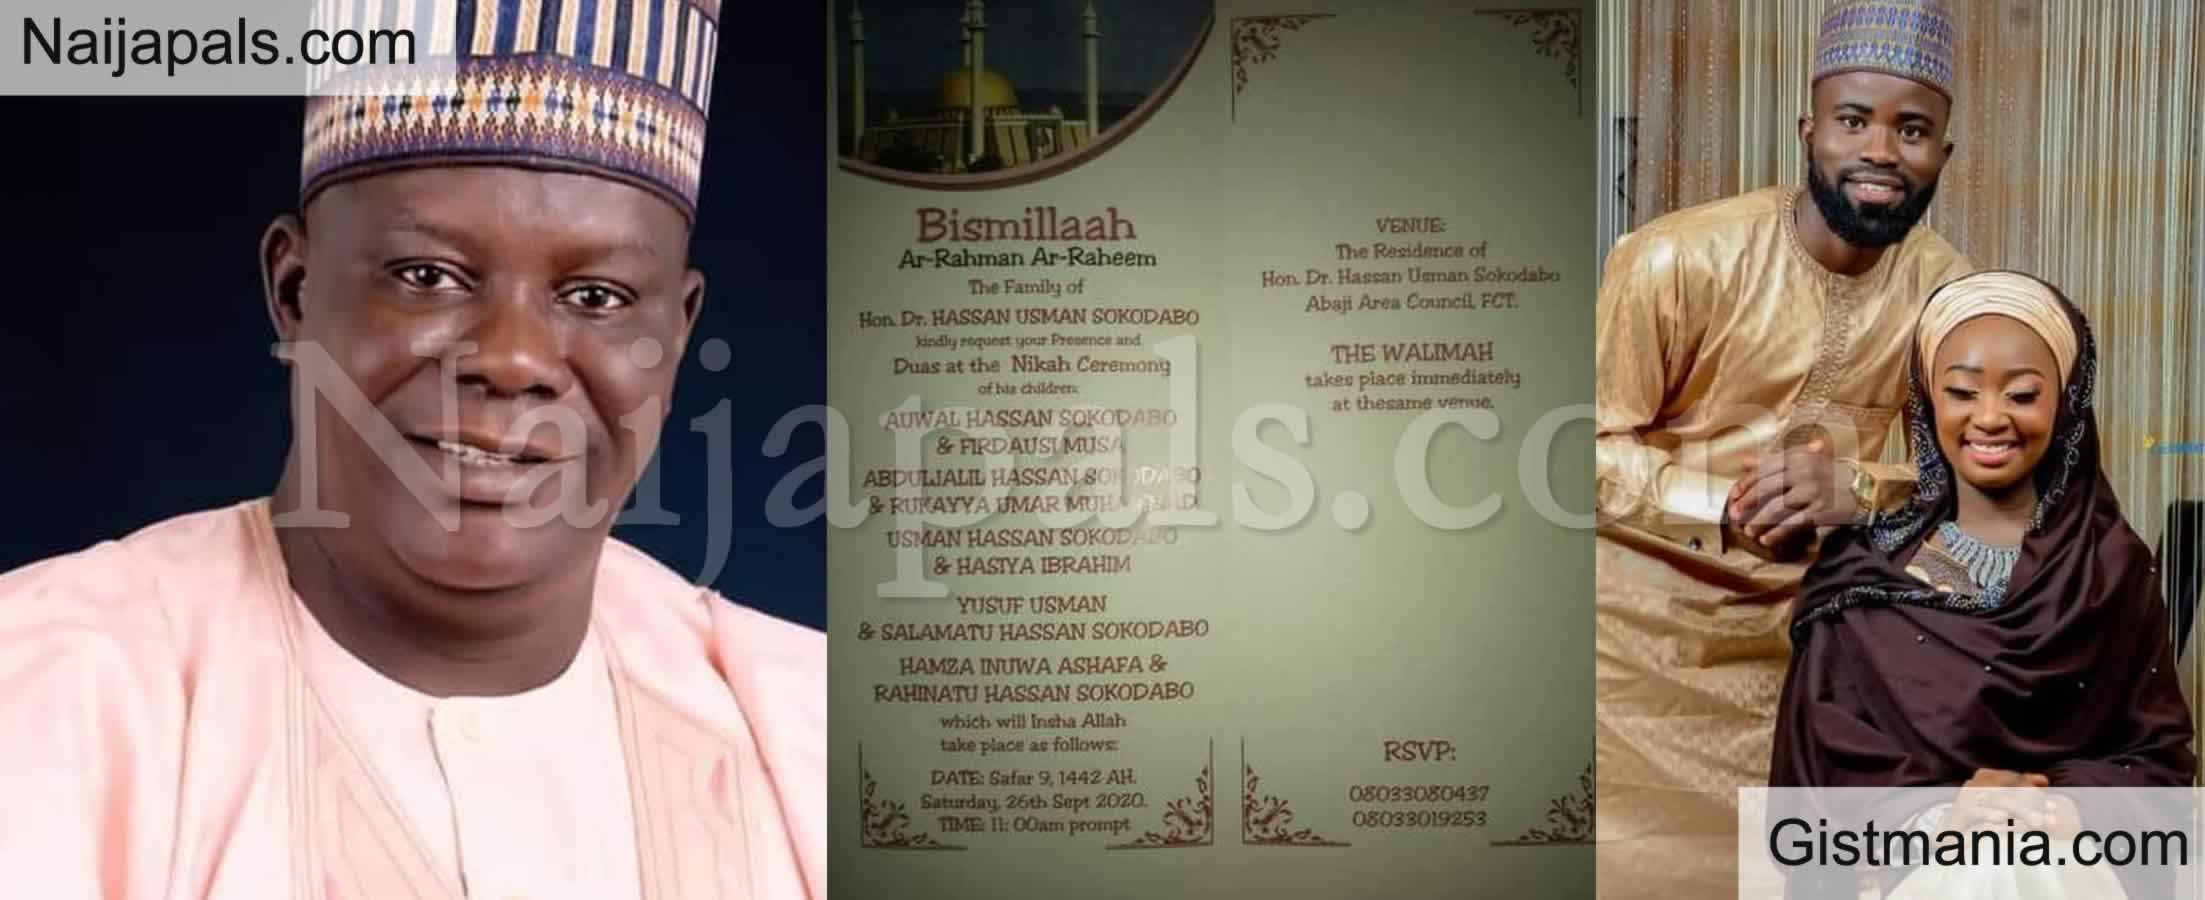 <img alt='.' class='lazyload' data-src='https://img.gistmania.com/emot/love.gif' /> <b>5 Children Of Nigerian Lawmaker, Hon. Dr Hassan Sokodabo Set To Wed On The Same Day In Abuja</b>